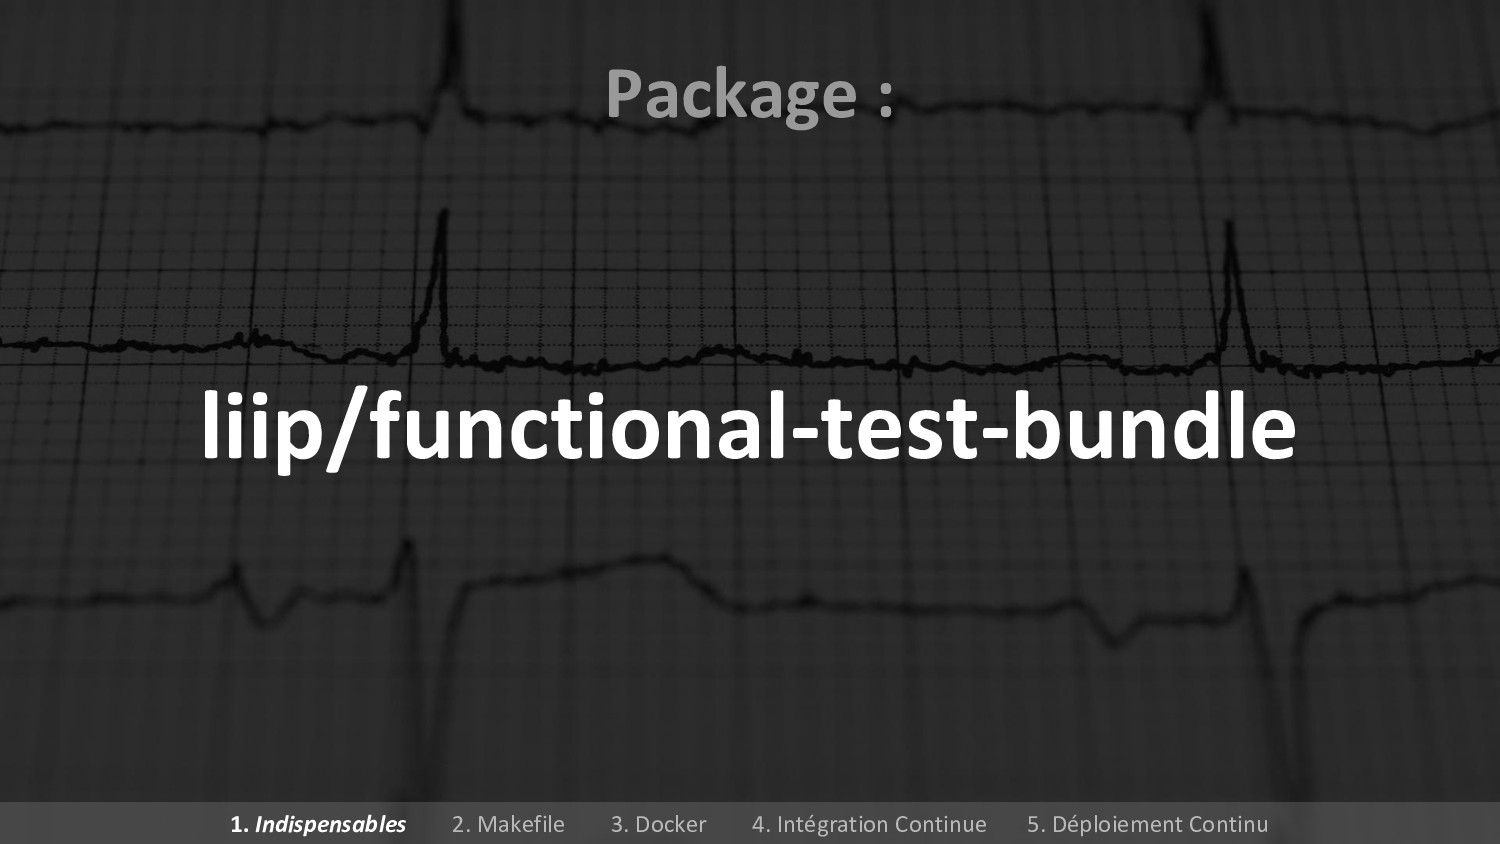 liip/functional-test-bundle Package : 1. Indisp...